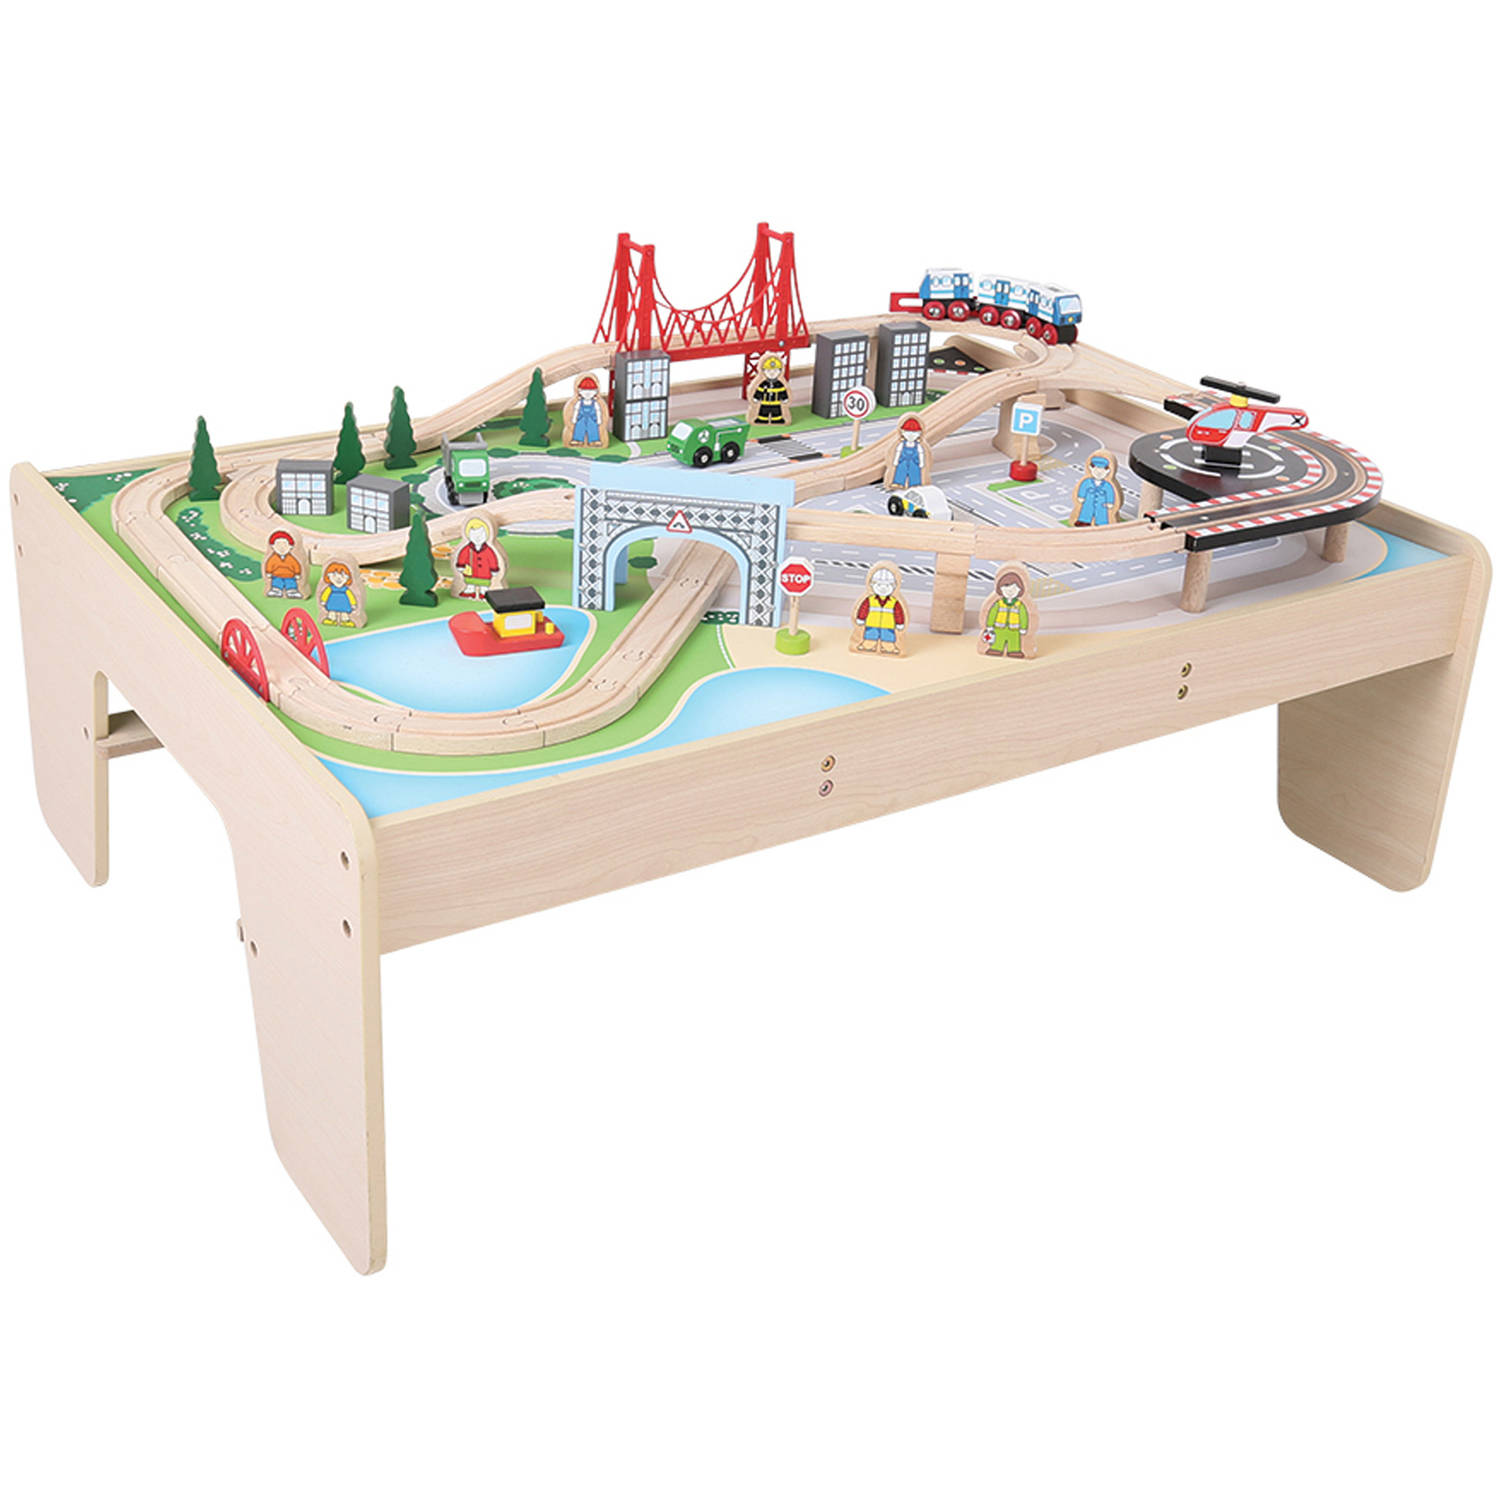 Bigjigs Toys City Train Set and Table by BigJig Toys